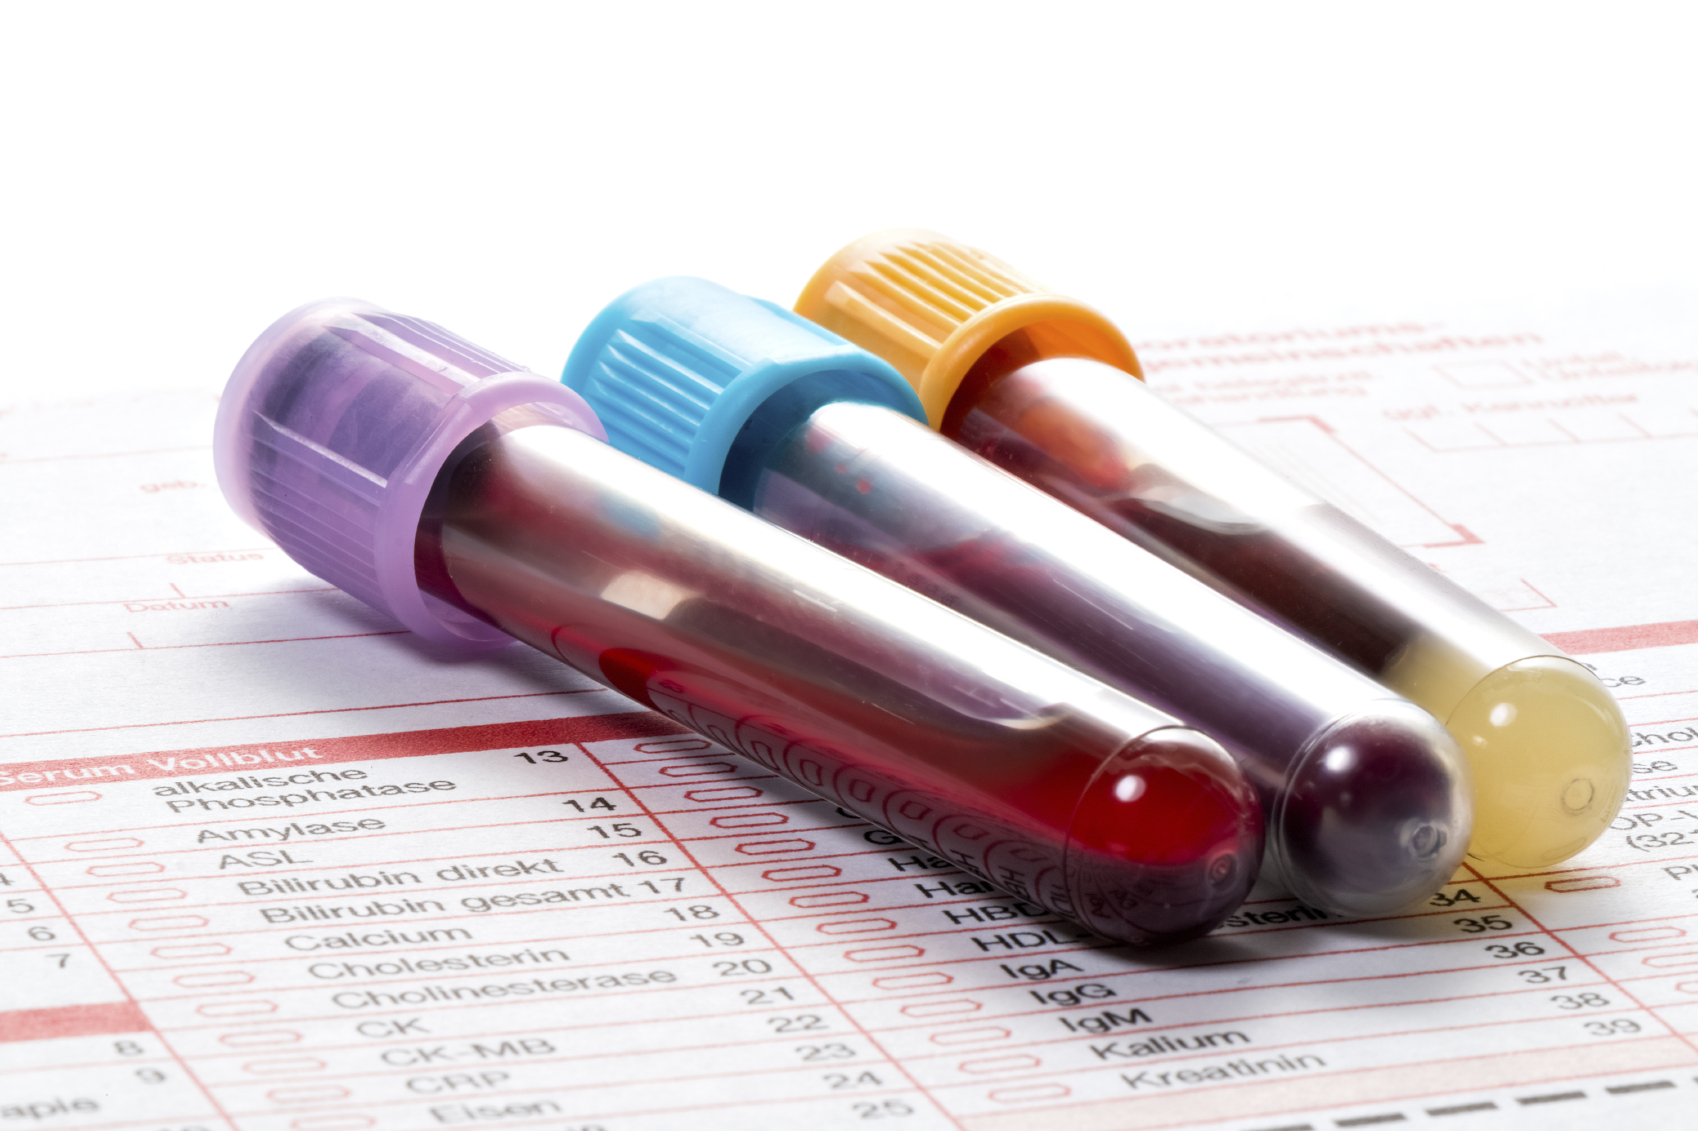 What To Do When Blood Test Results Are Not Quite Normal